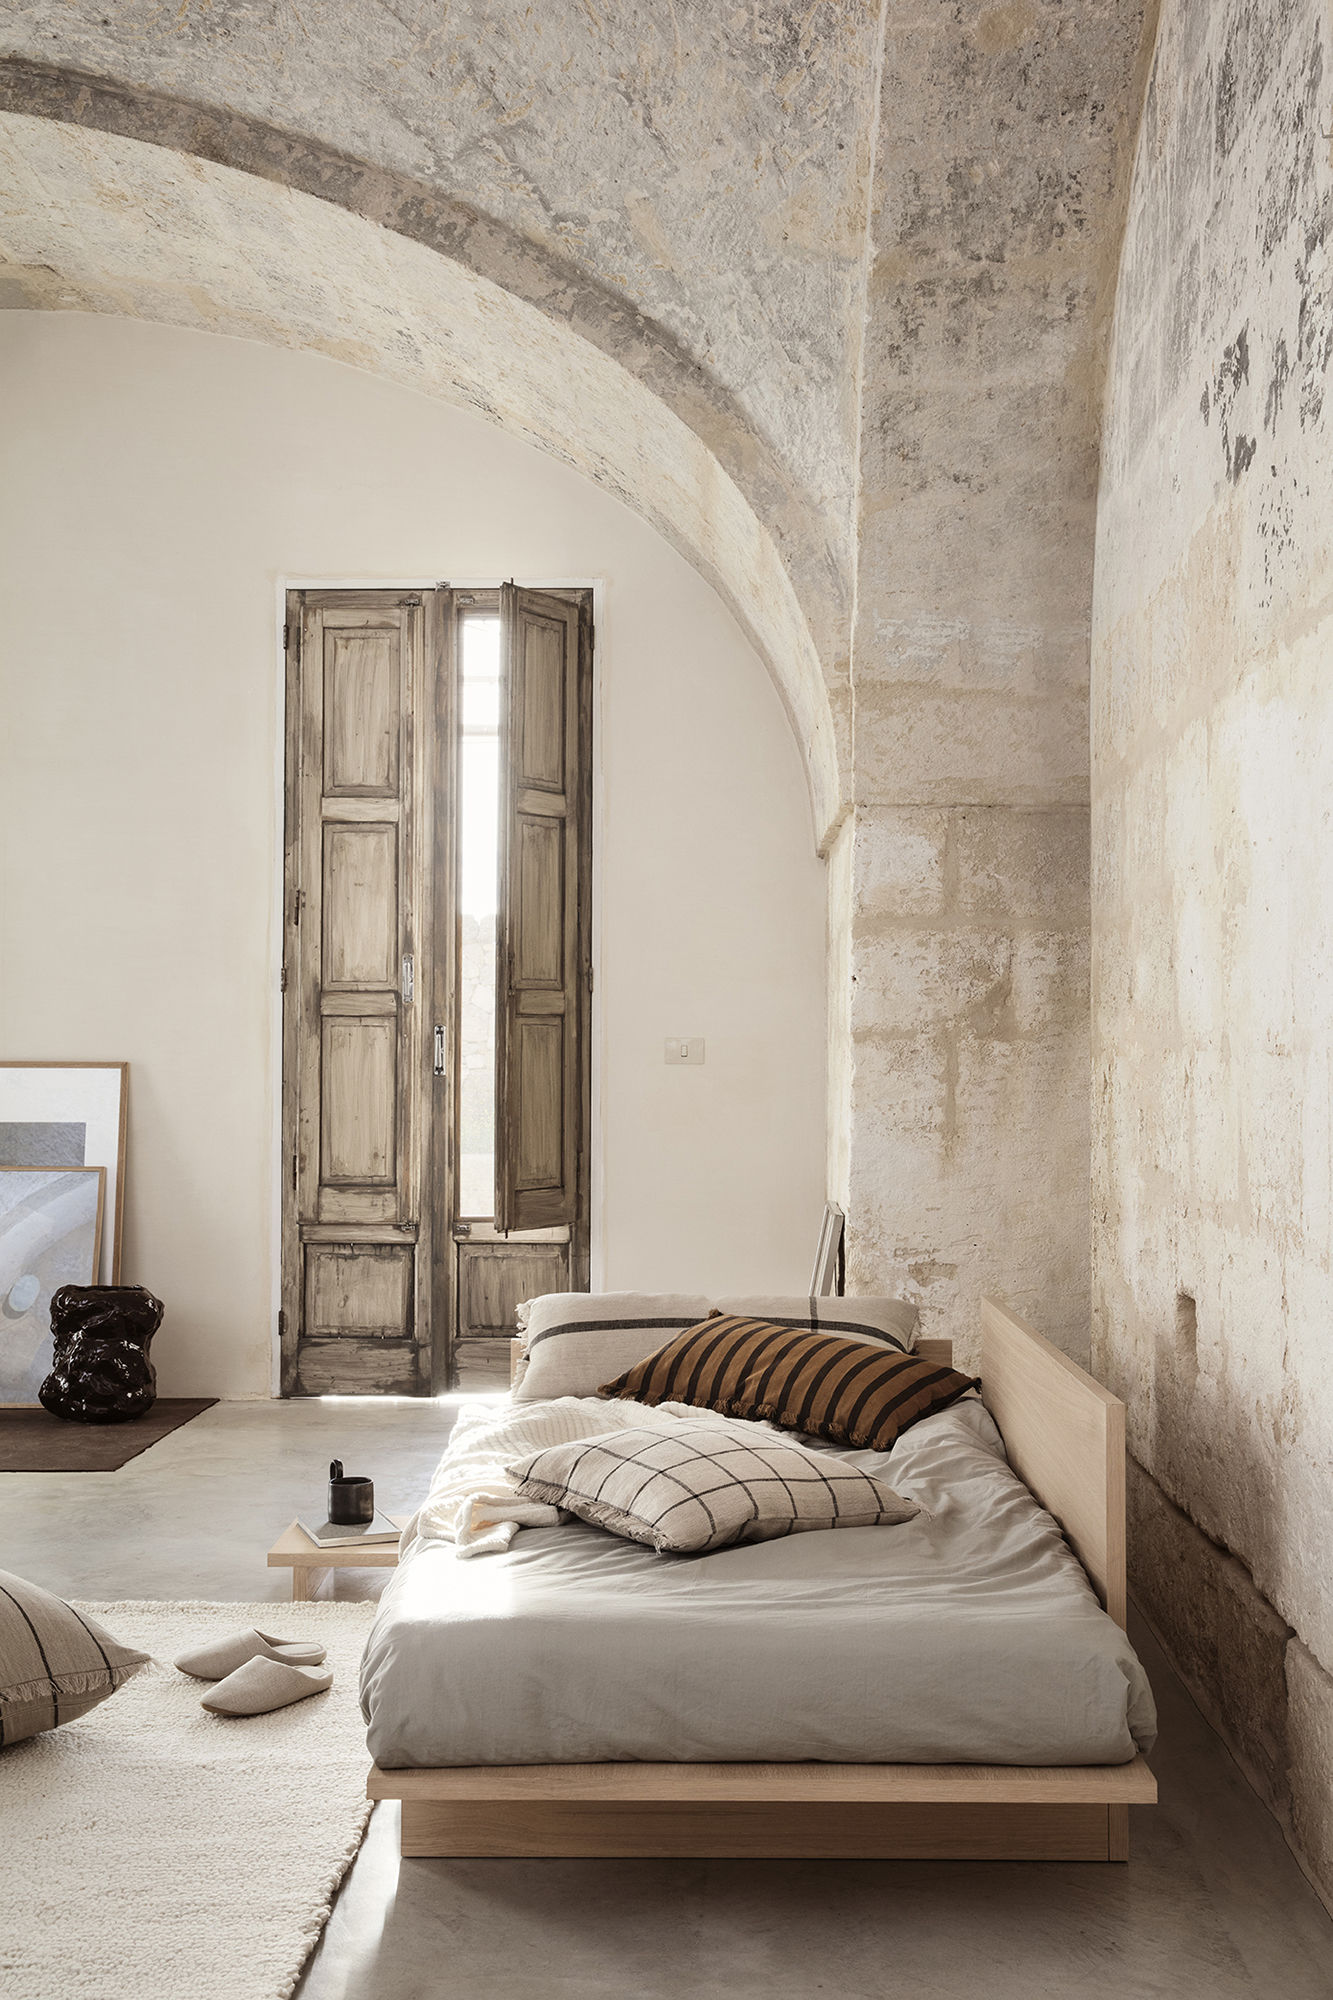 STILLSTARS - Heidi Lerkenfeldt for Ferm Living